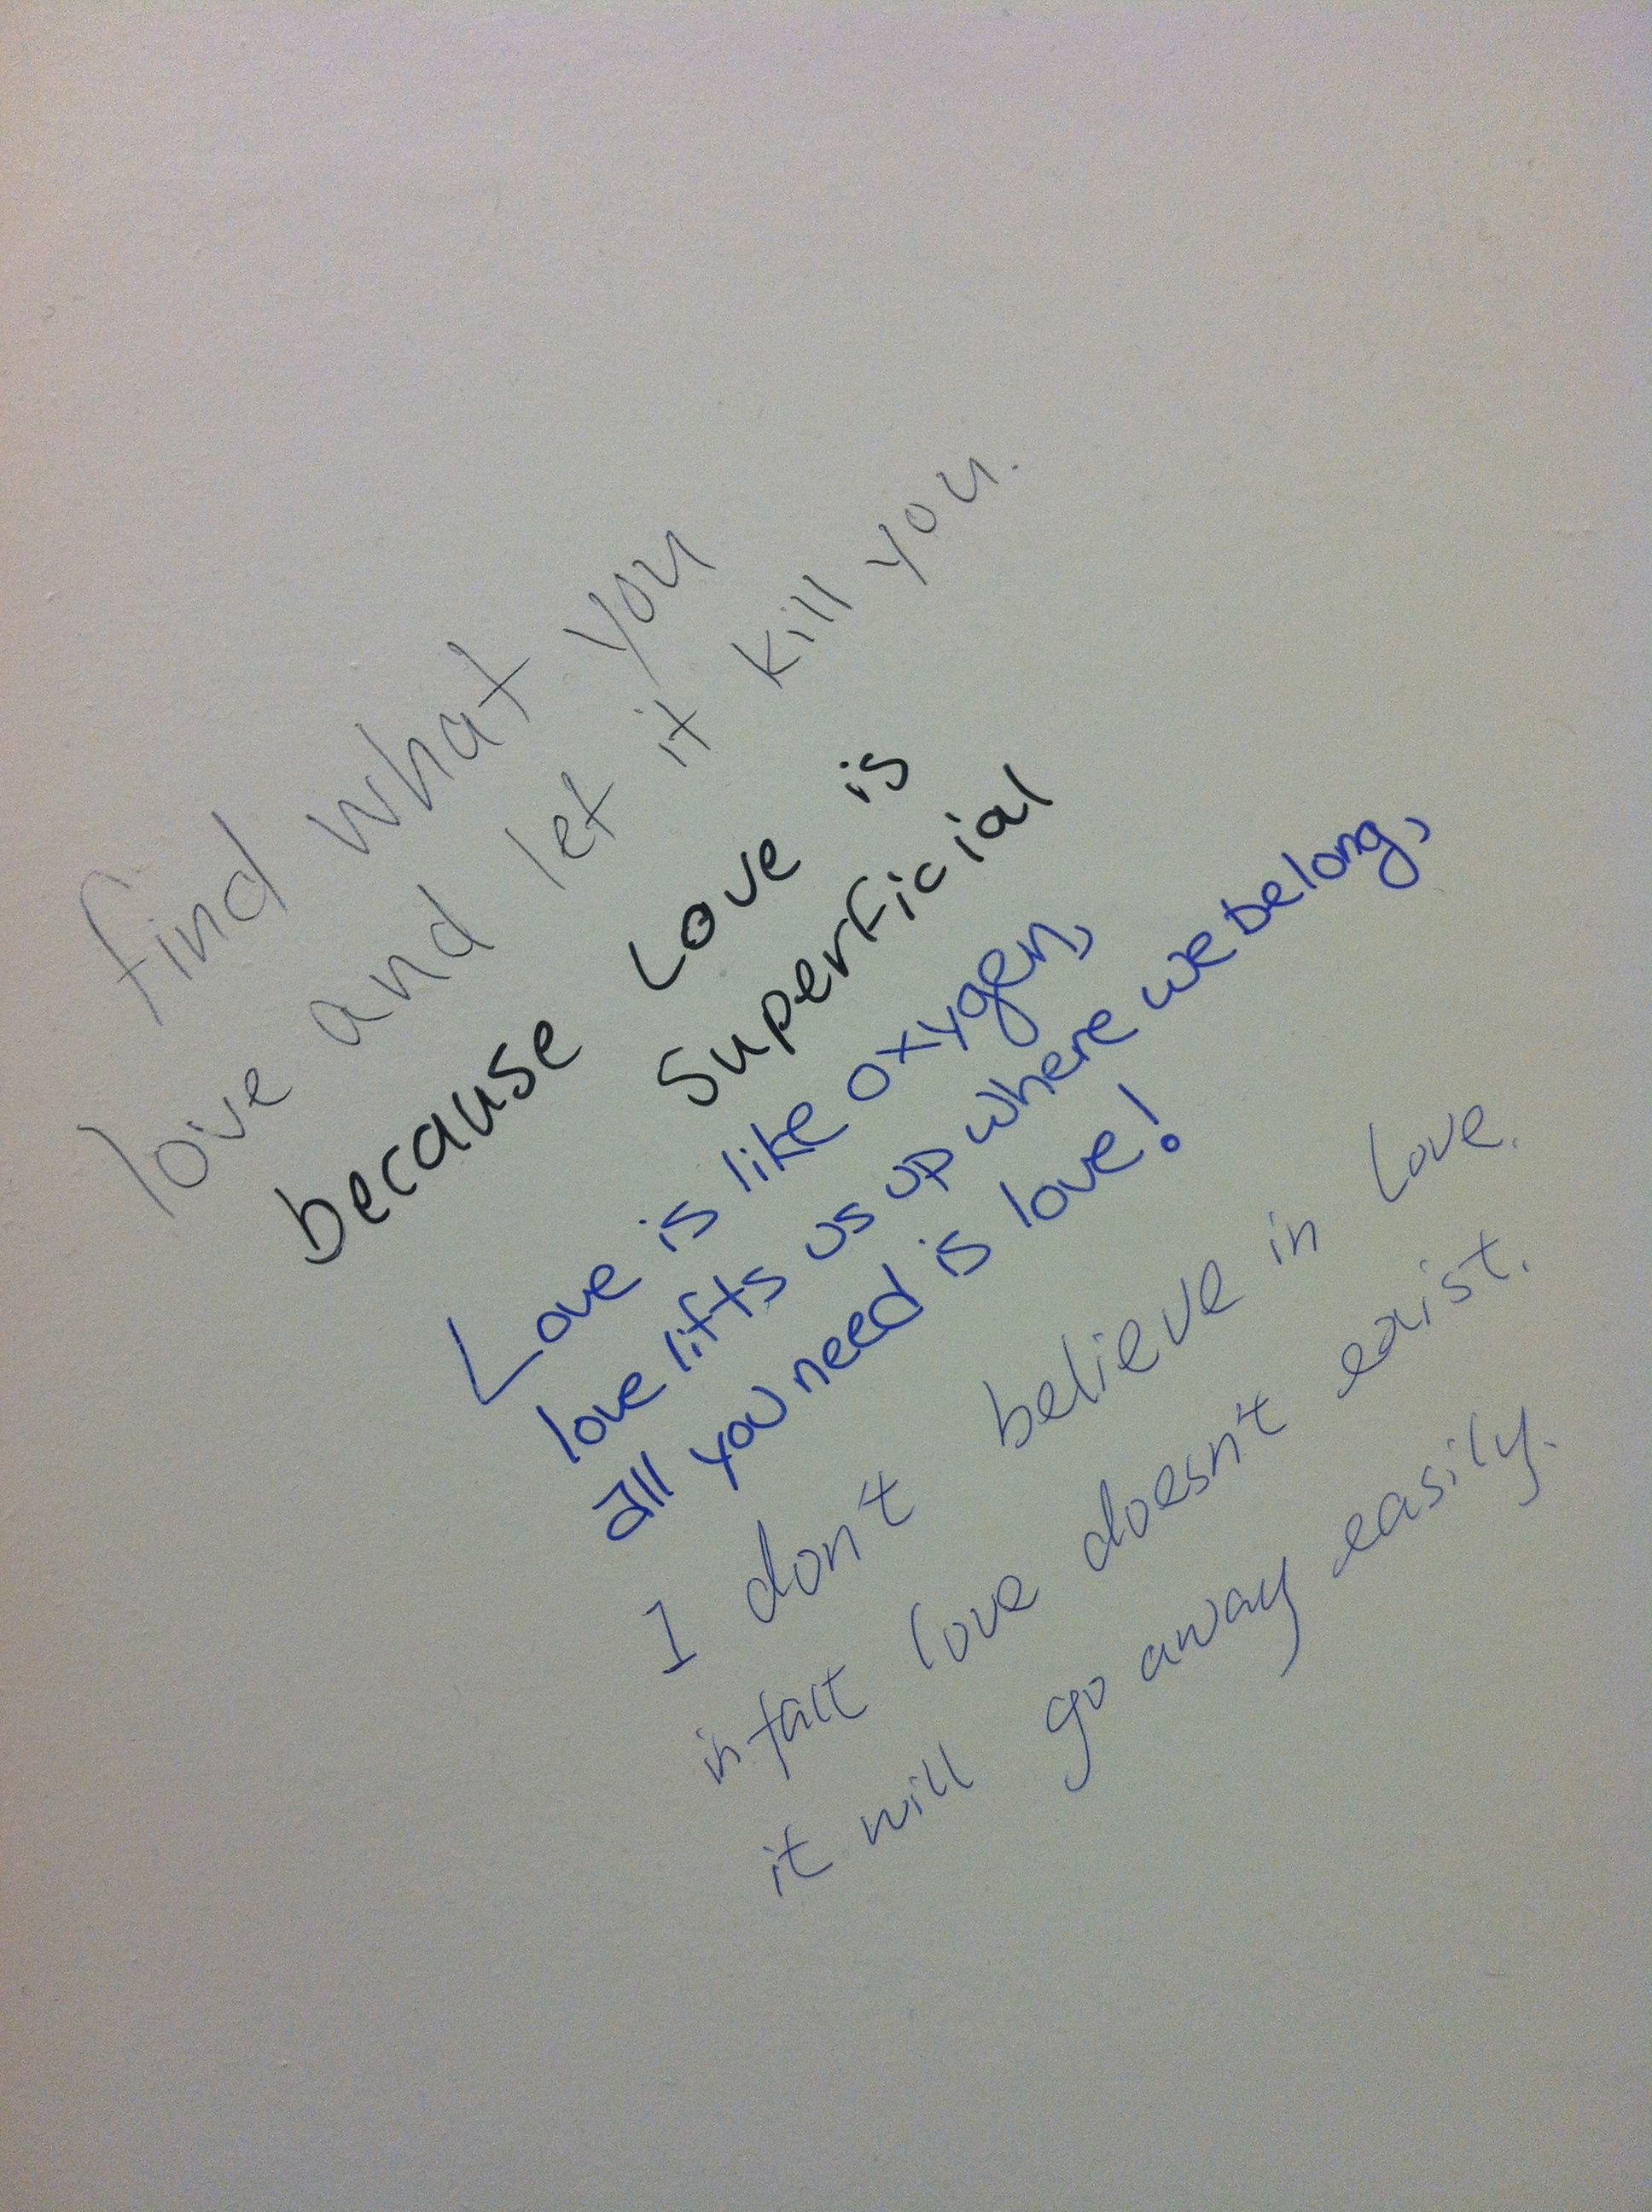 Bathroom stall writings. Found this inside the door of a stall at my school  Probably the